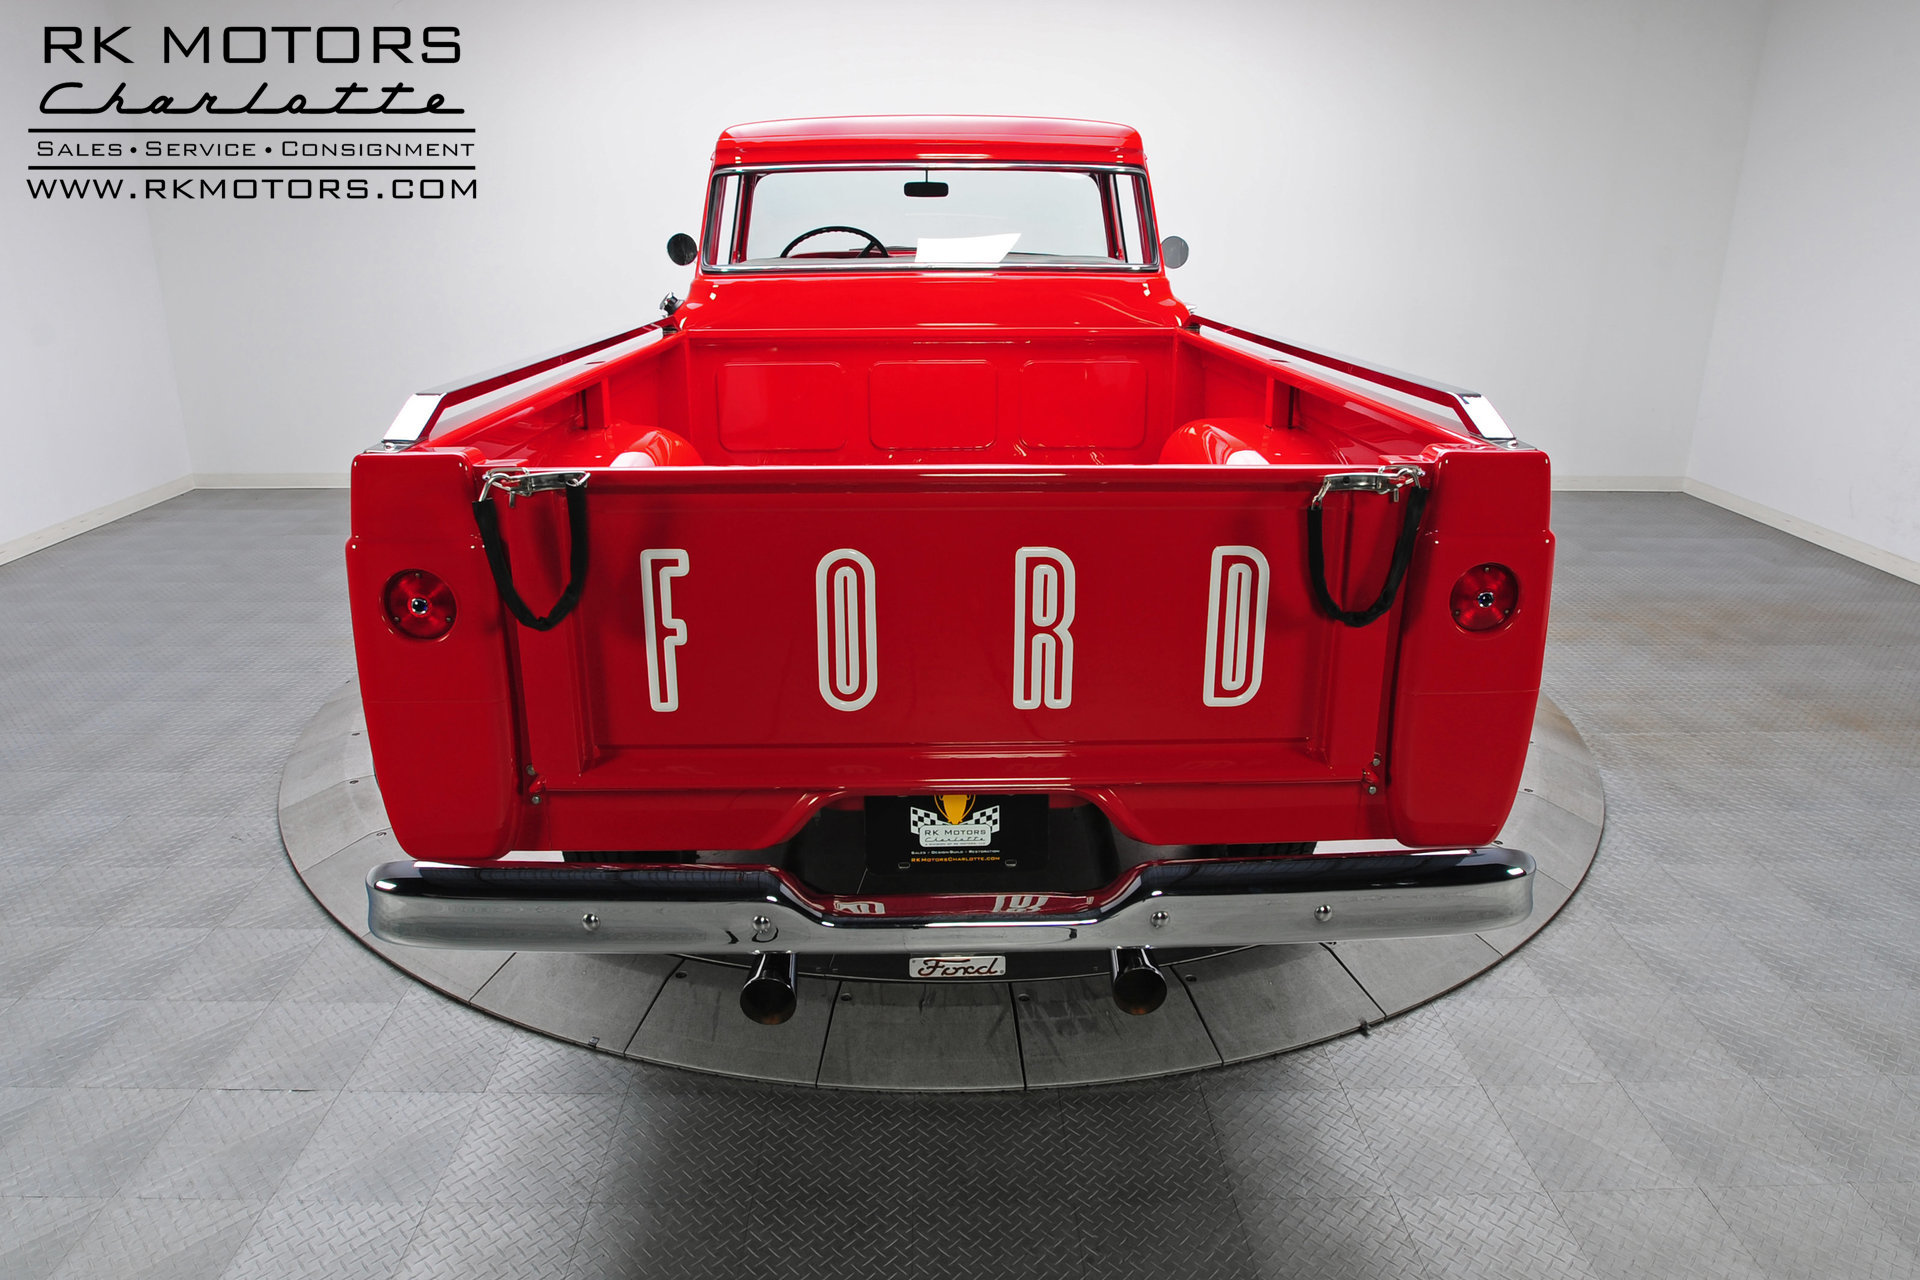 133083 1959 Ford F100 Rk Motors Classic And Performance Cars For Sale 1955 Red